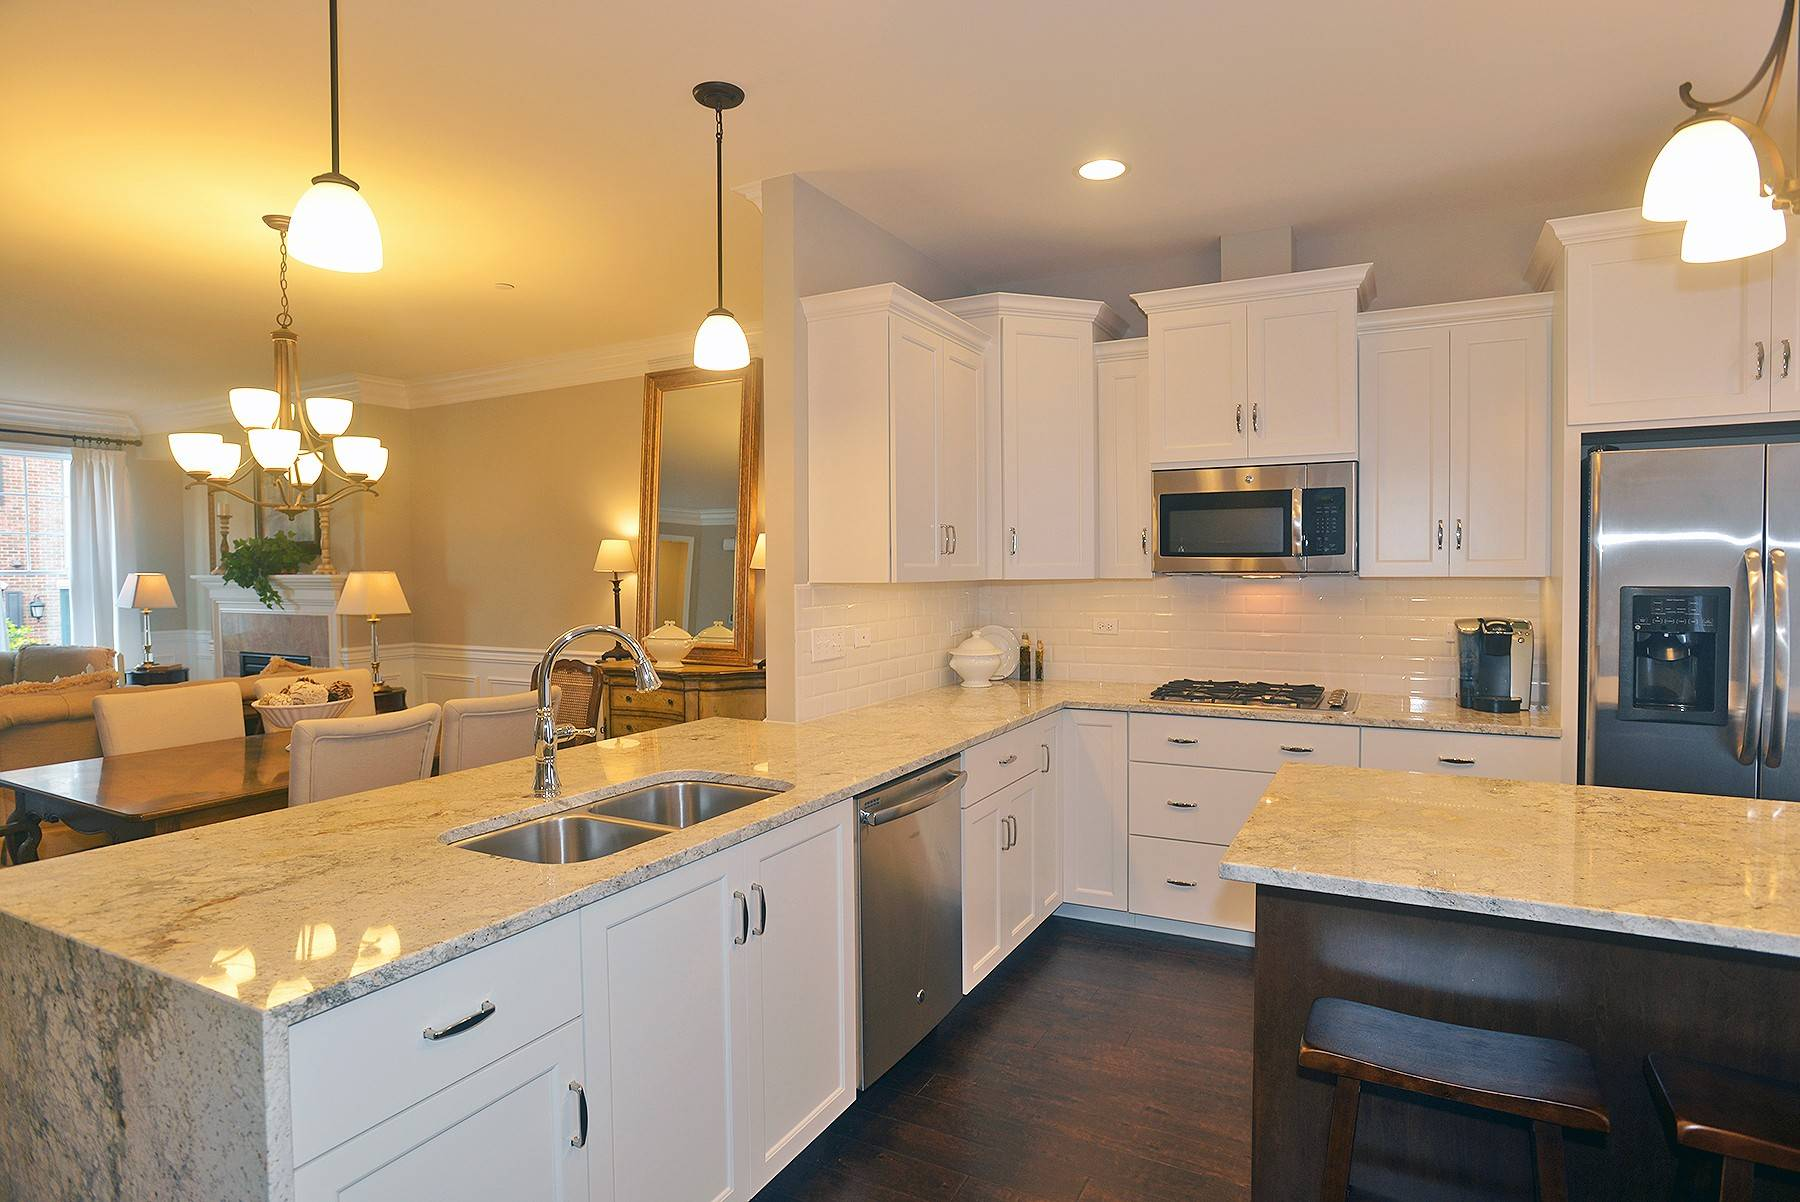 At Courthouse Square In Wheaton, Airhart Construction Offers Floor Plans  With Two Kitchen Islands.